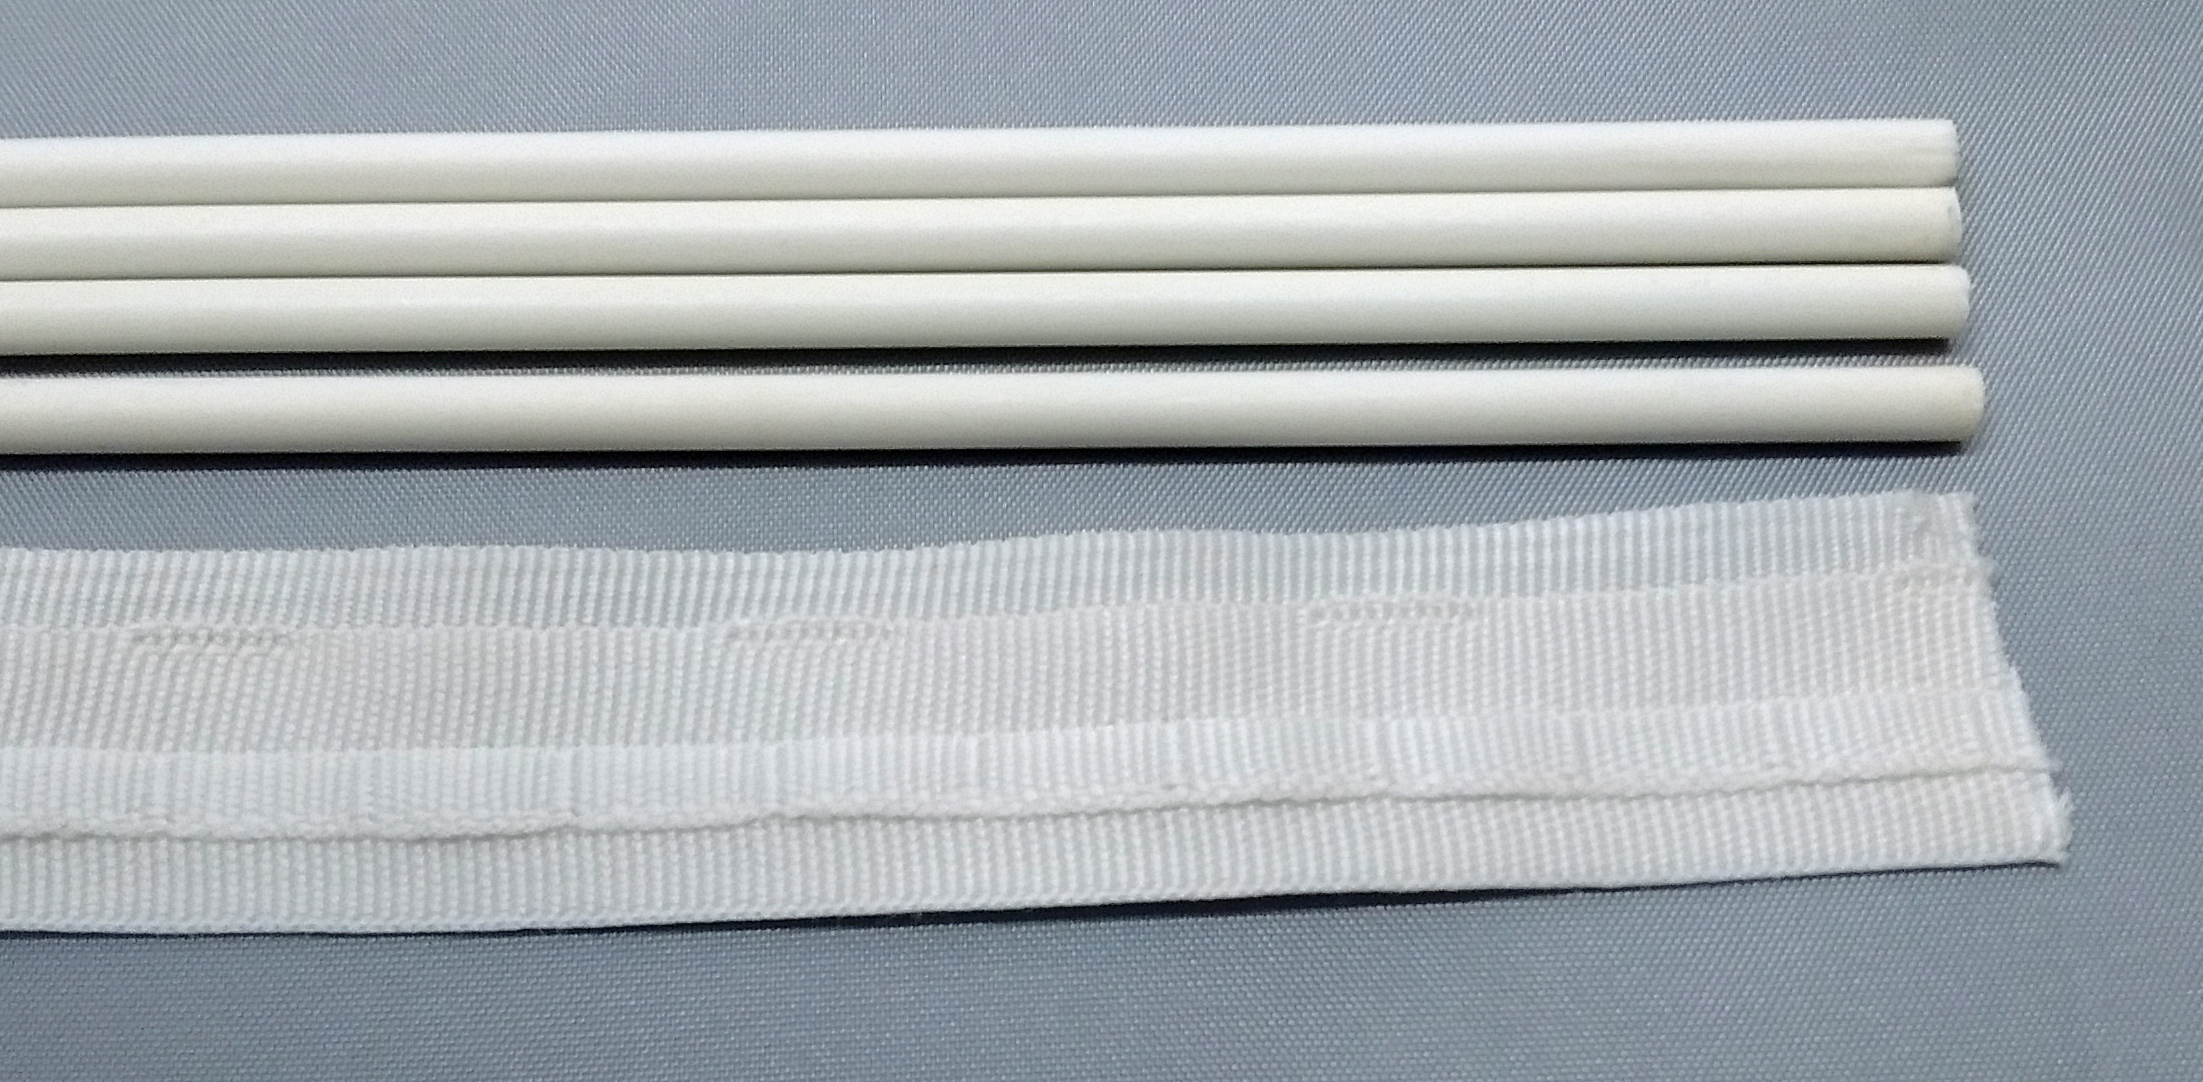 Rods And Tape For Roman Blinds John Downs Ltd